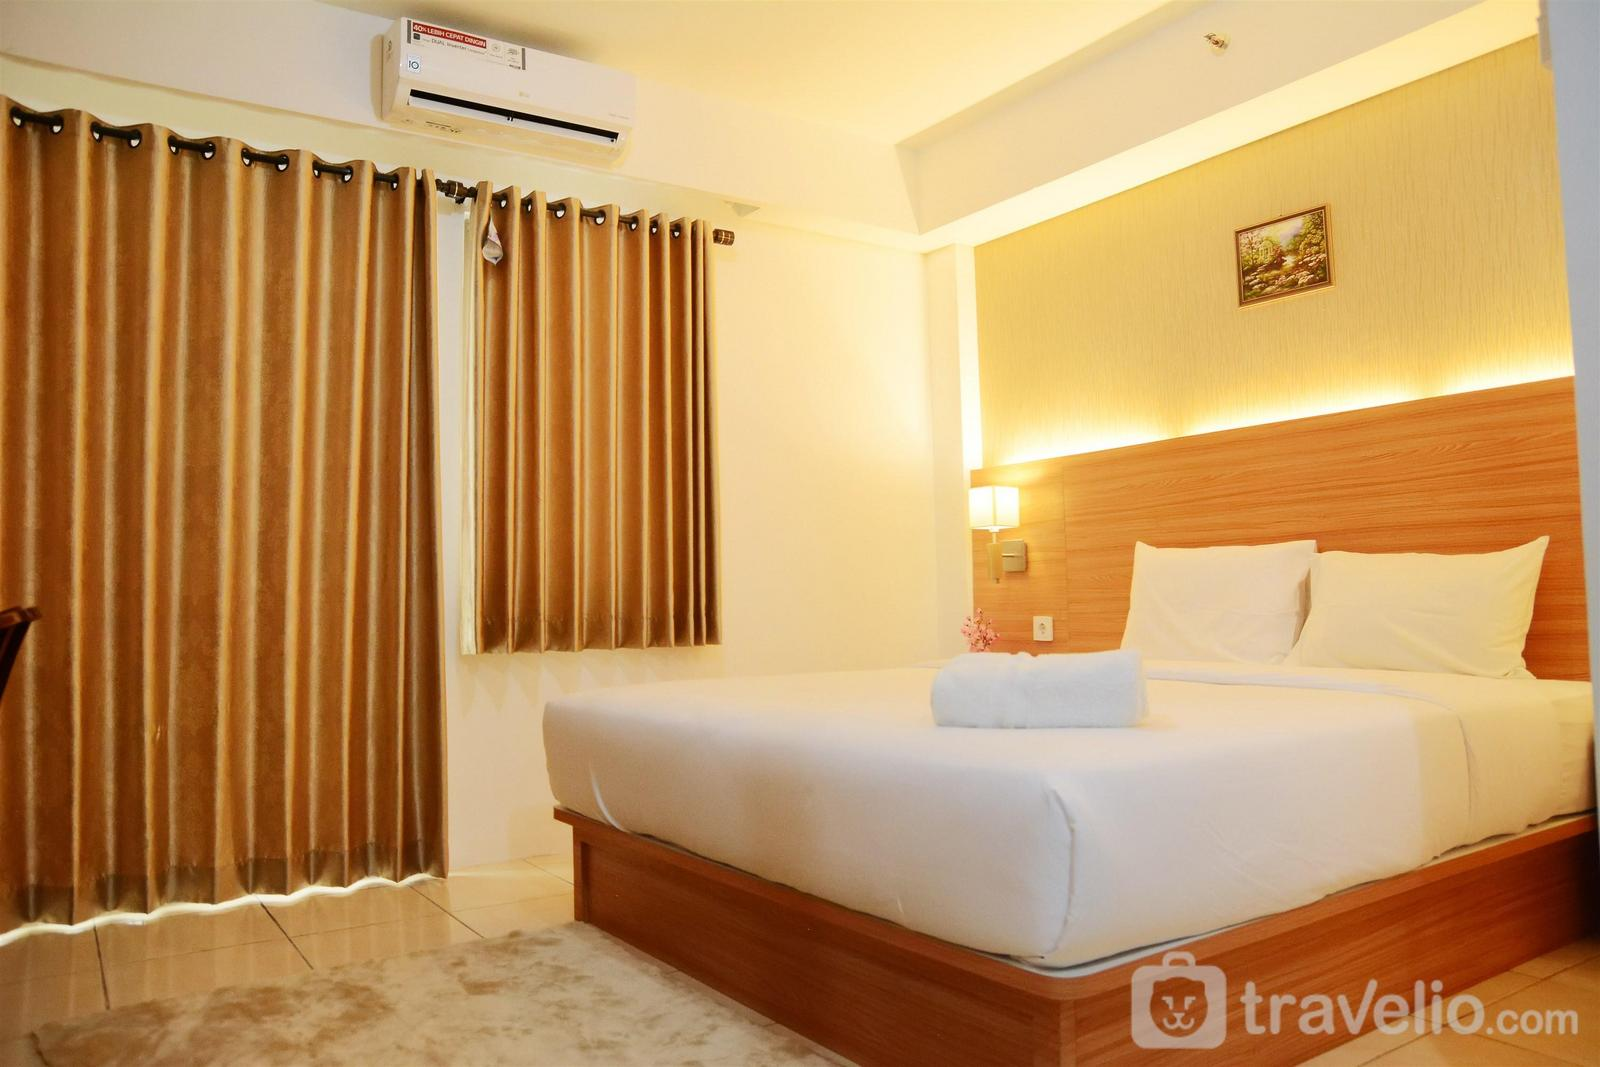 Apartemen Annora Living - Simply Studio Room @ Annora Living Apartment Tangerang By Travelio